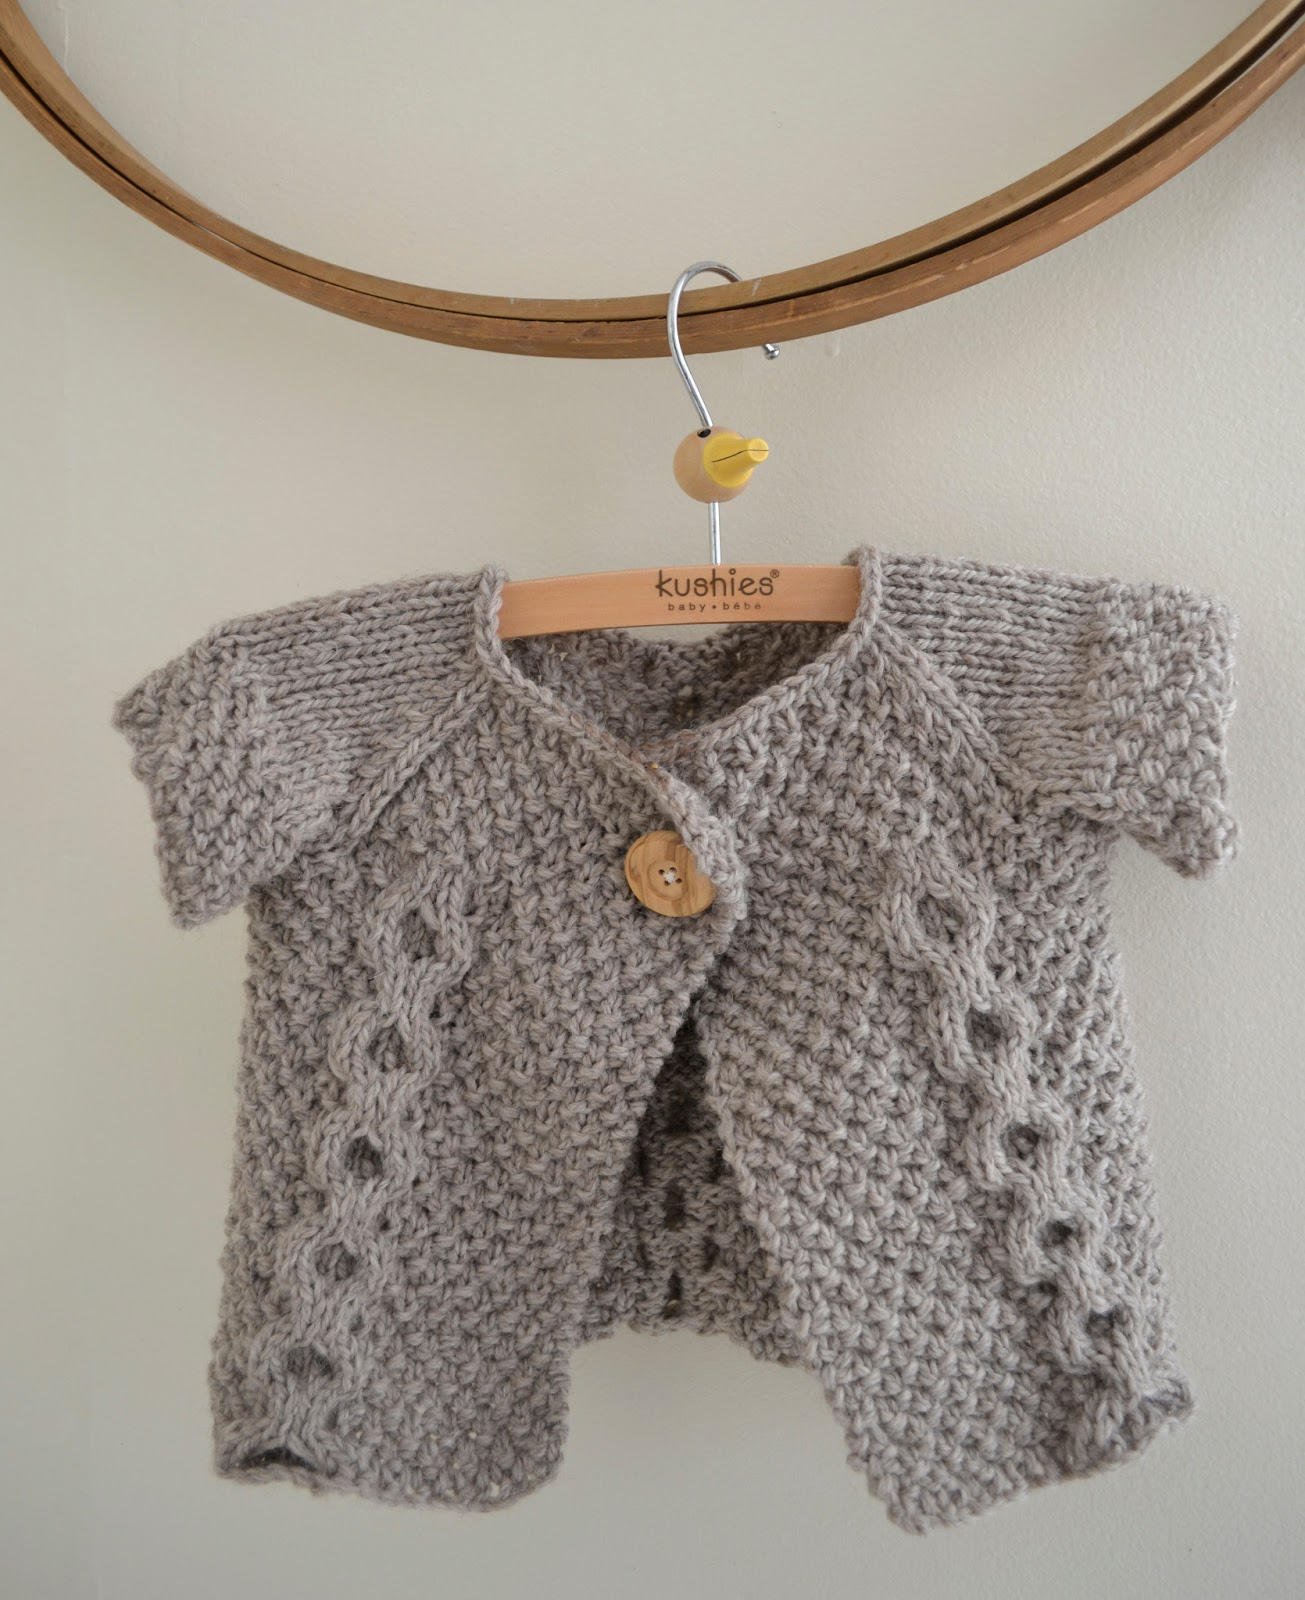 Knitting Patterns For Sweaters For Toddlers : Baby Sweater Knitting Pattern A Knitting Blog